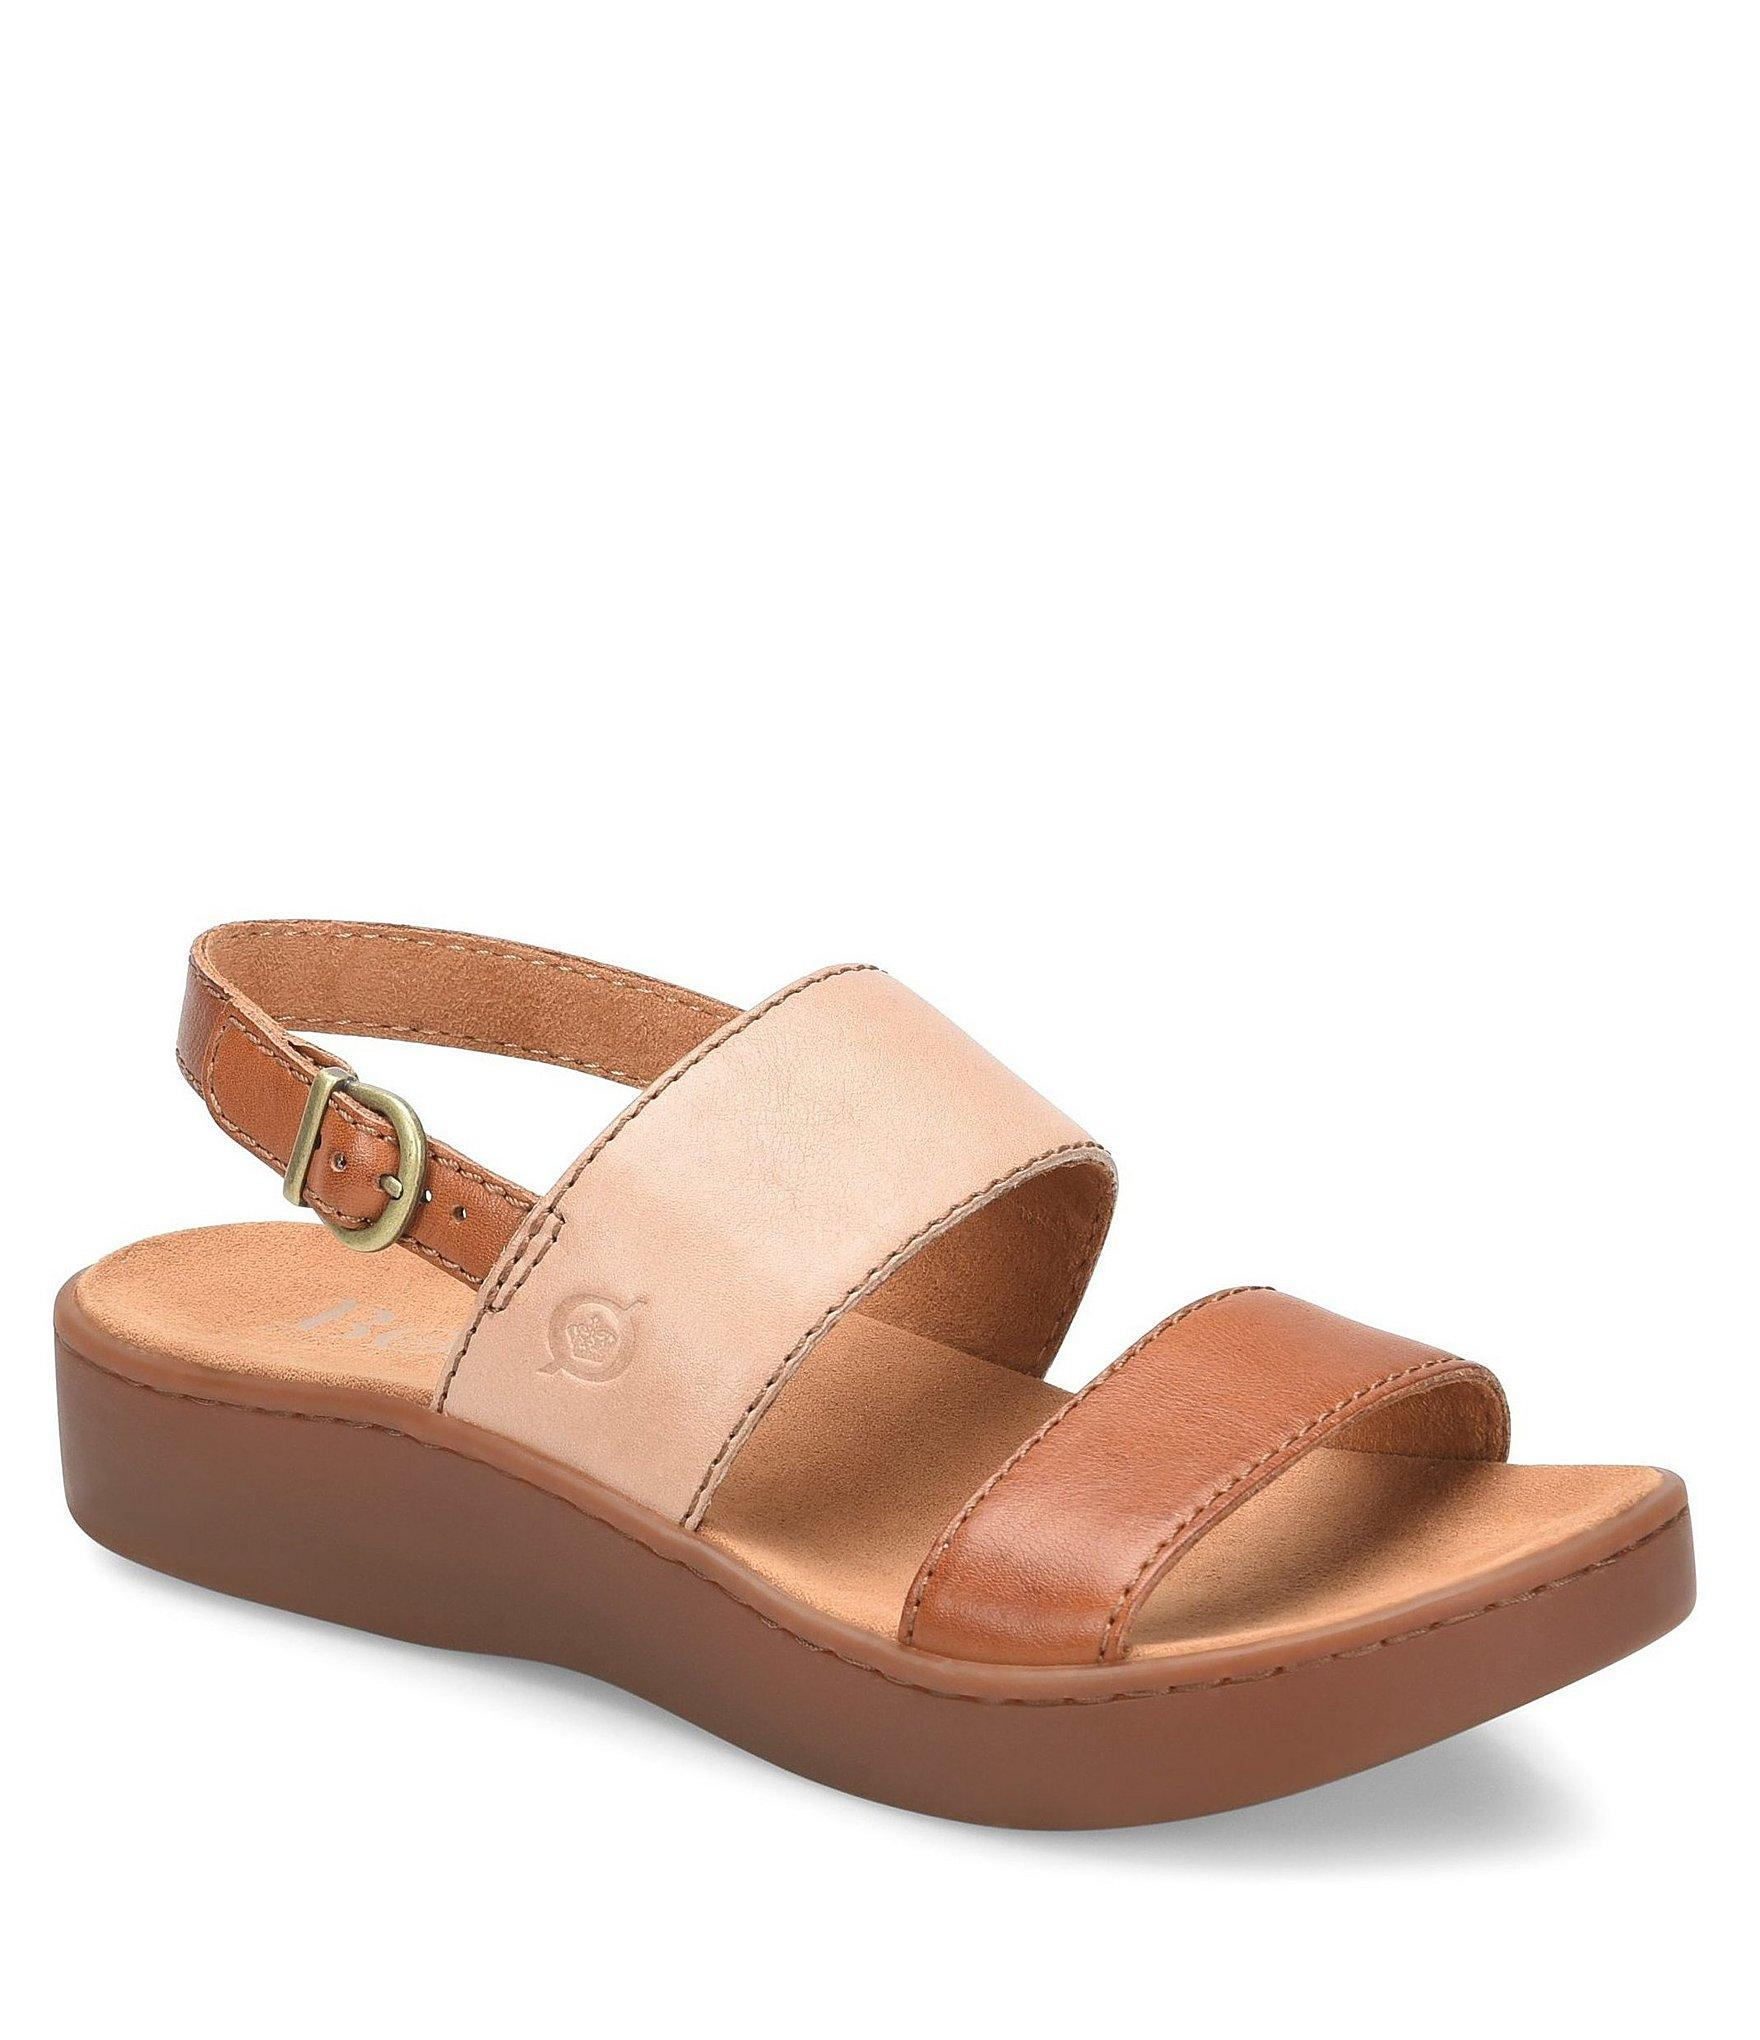 70935bc846ba Lyst - Born Oconee Banded Leather Sandals in Brown